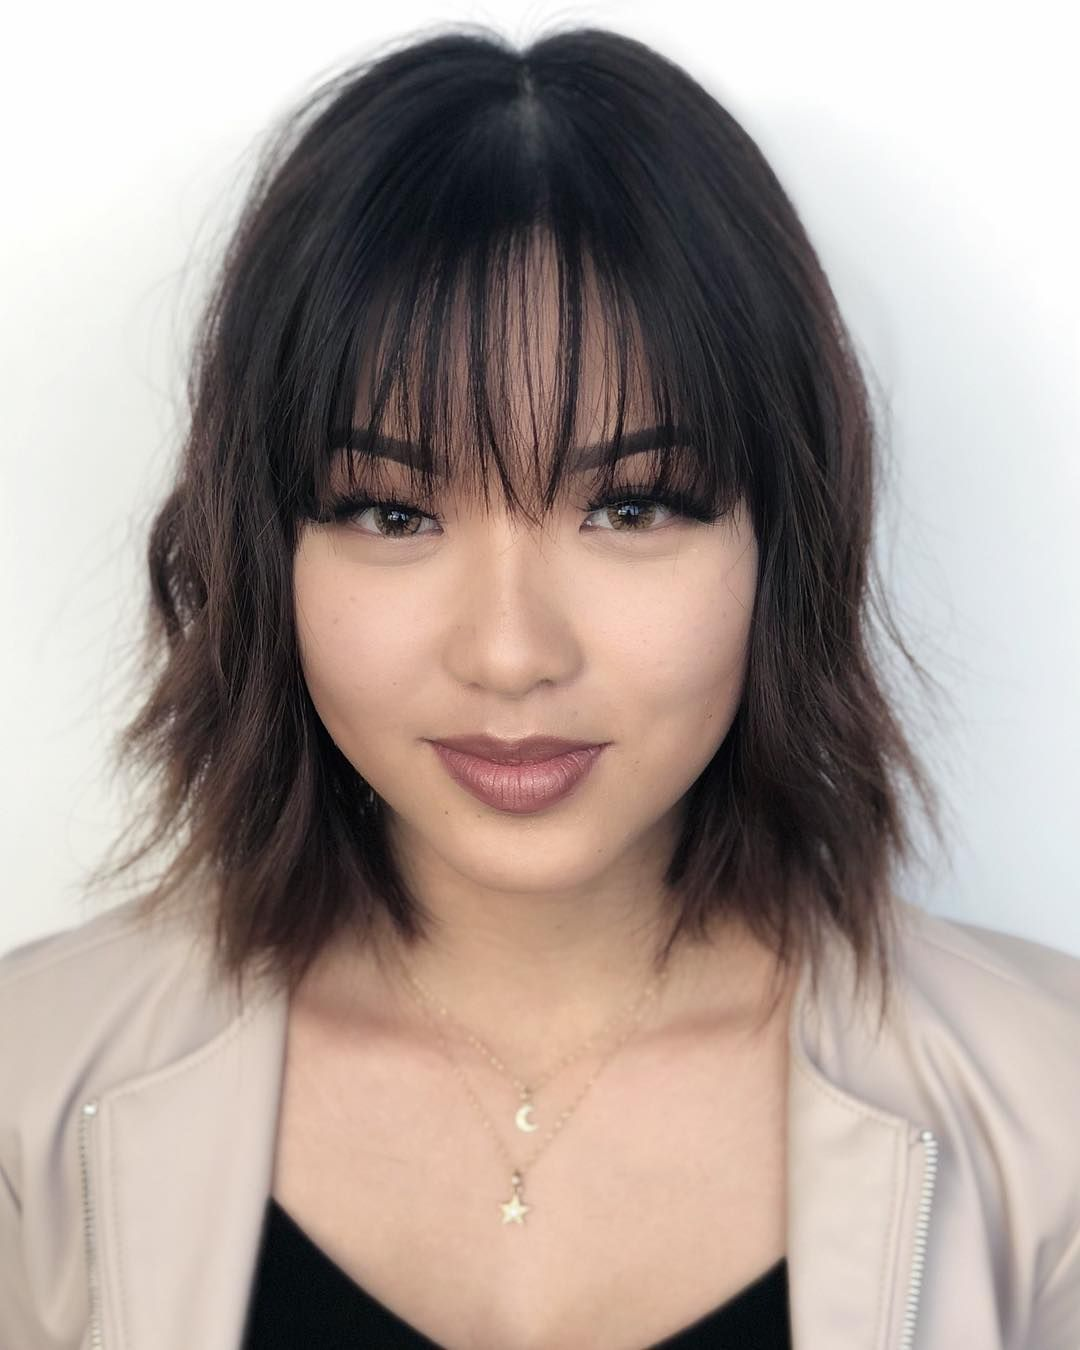 Women's Chic Wavy Textured Bob with Thin Wispy Bangs and Subtle Brunette Balayage Medium Sexy Trending Feminine Hairstyle